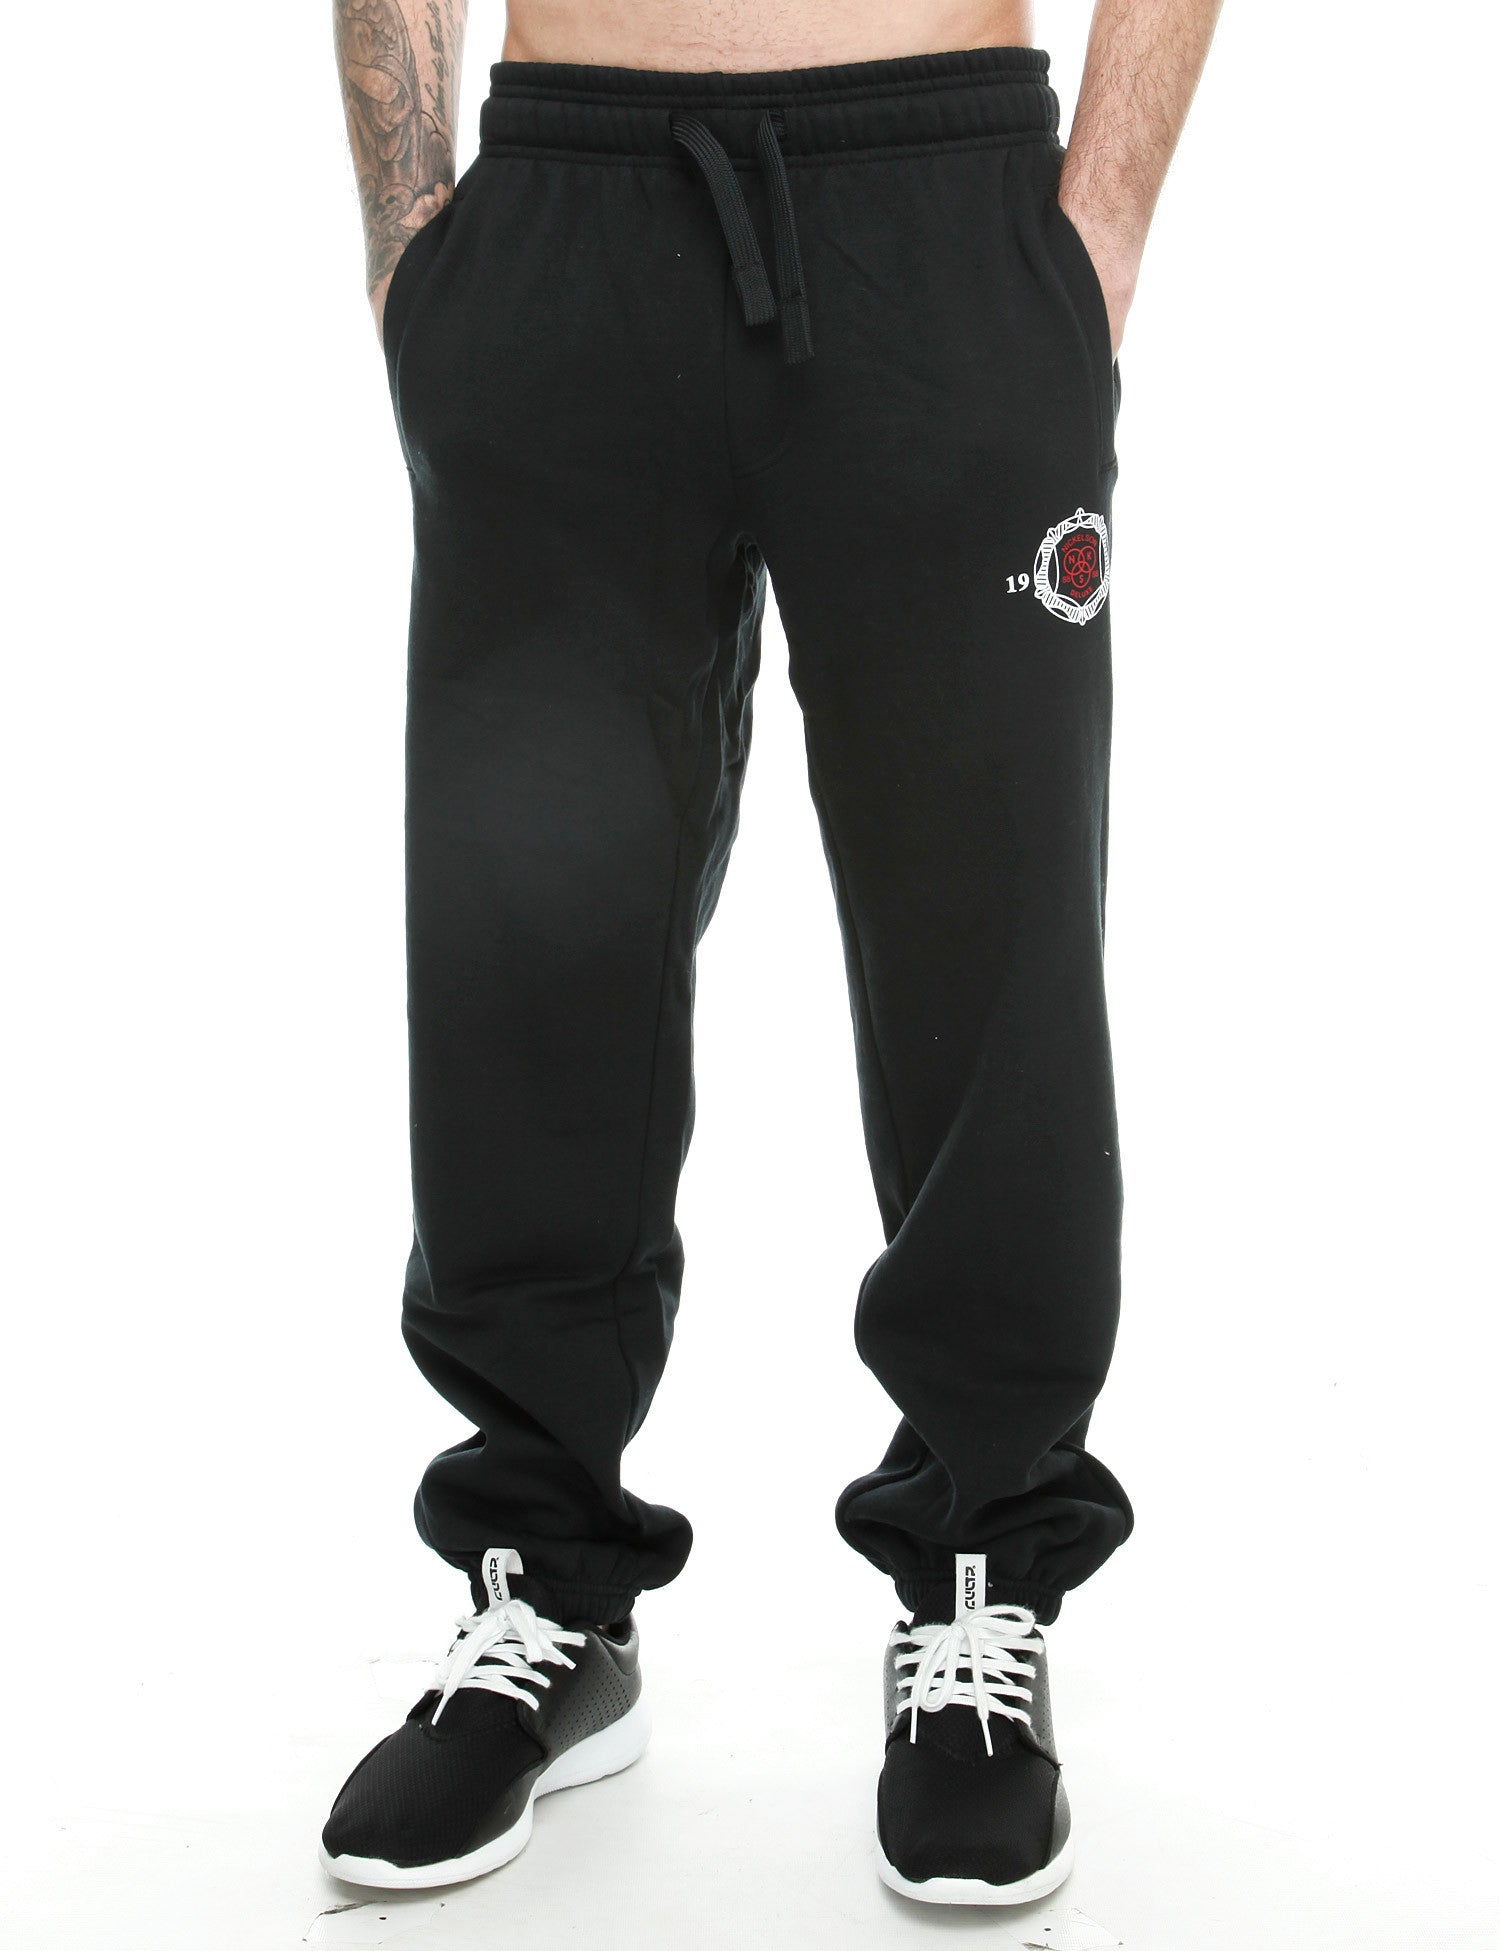 Nickleson Brentwood Sweatpant RSK00035 Antracite Black